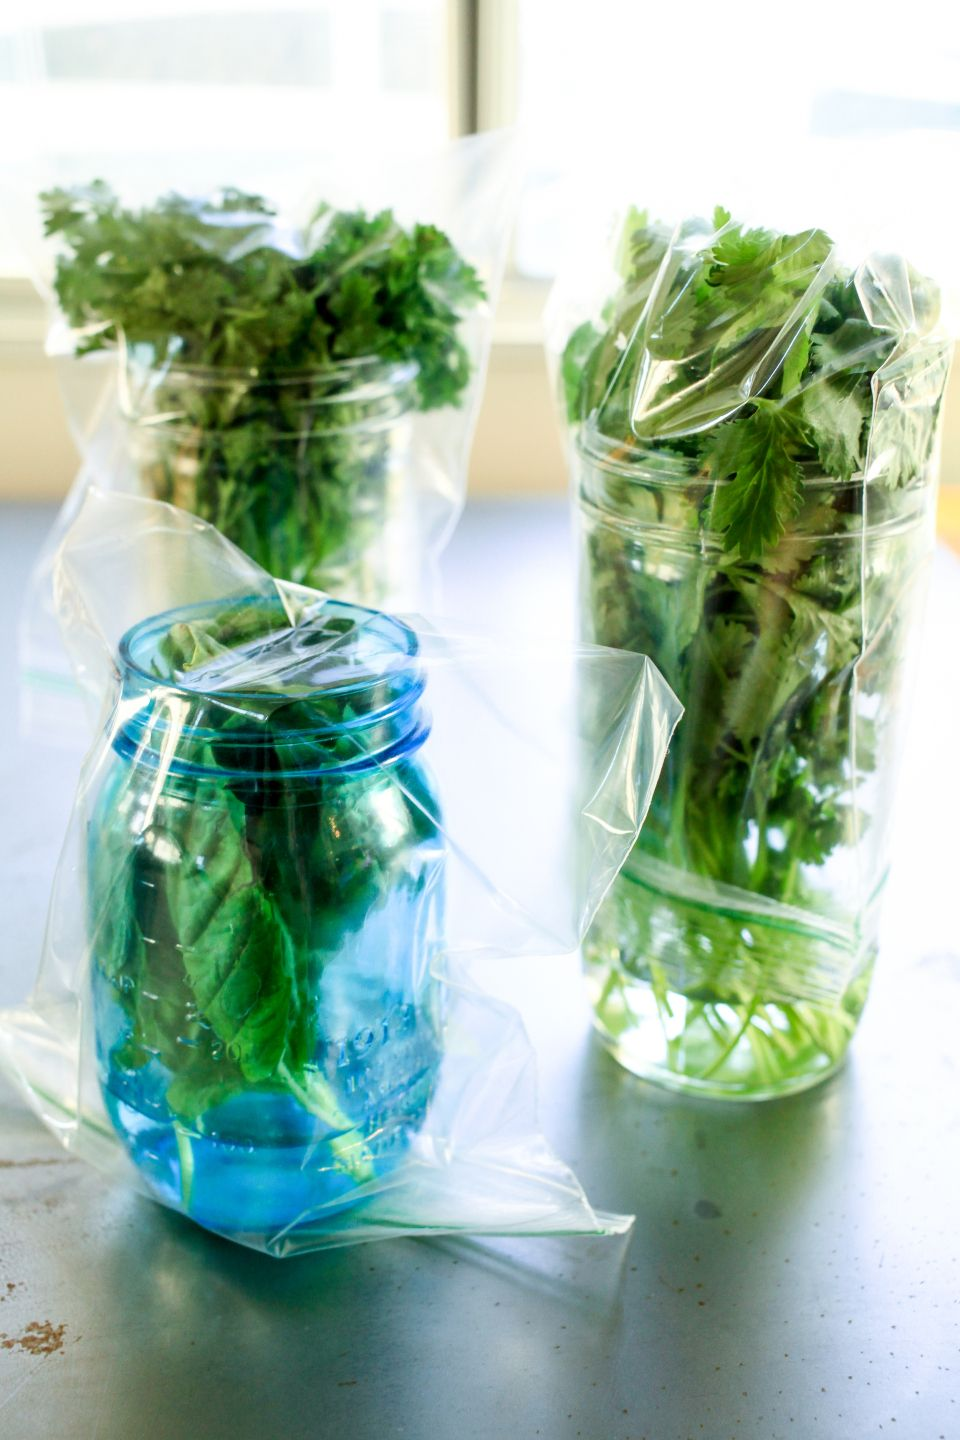 How to store fresh herbs cooking with fresh herbs fresh